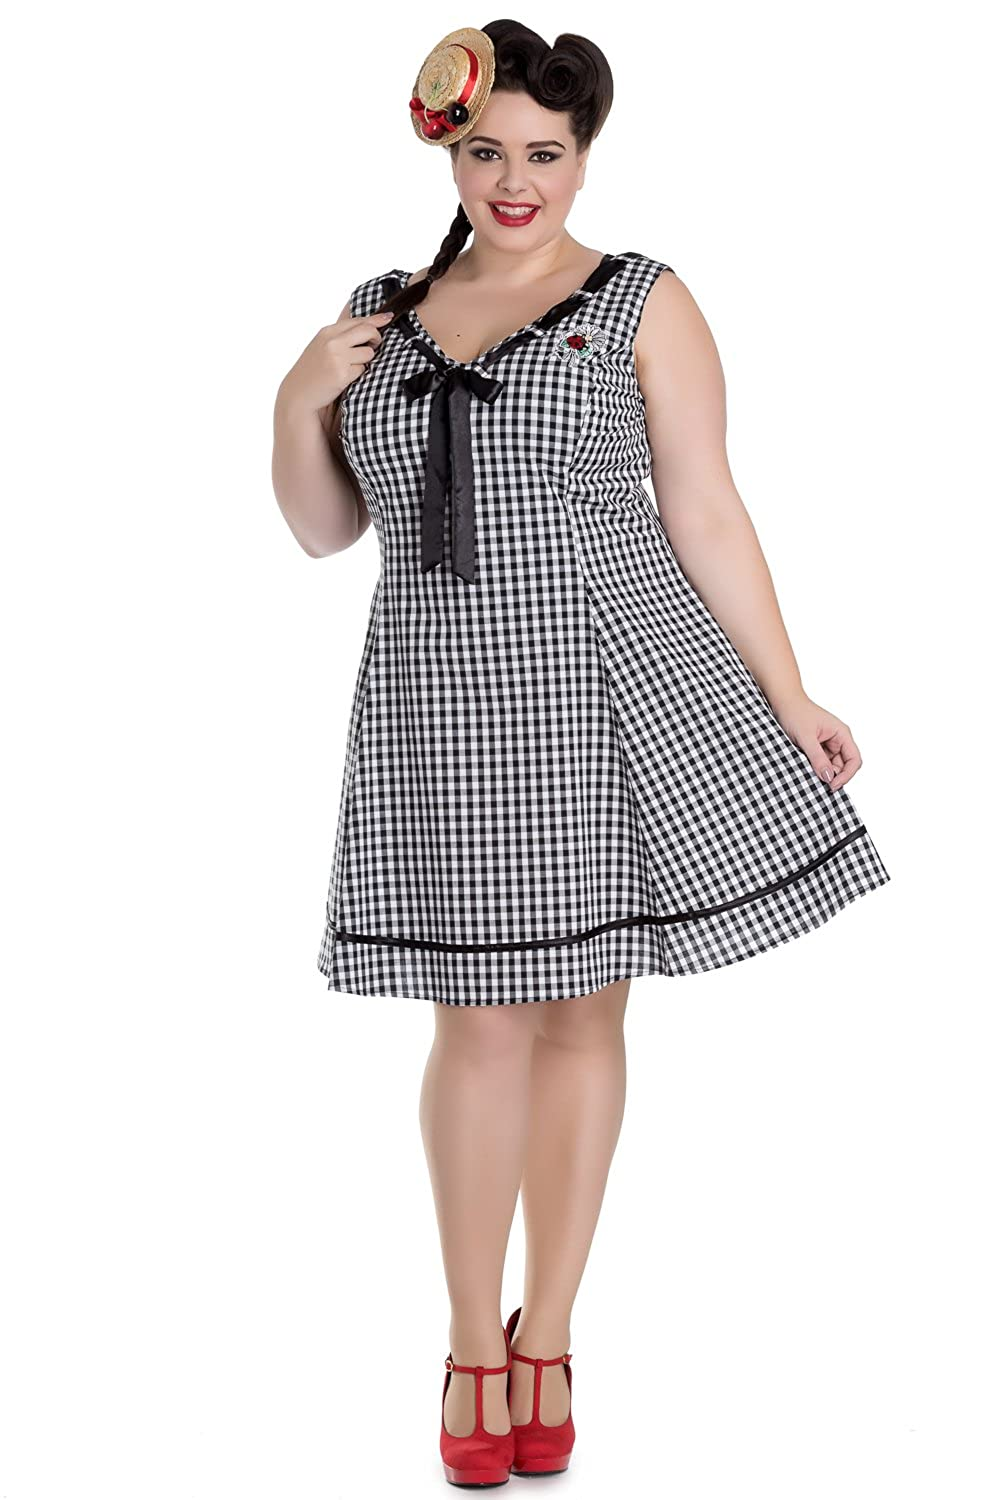 Plus Size Retro Dresses Hell Bunny Plus Sweet Lady Gingham Check Ladybug Embroidery V-neck Dress $73.00 AT vintagedancer.com